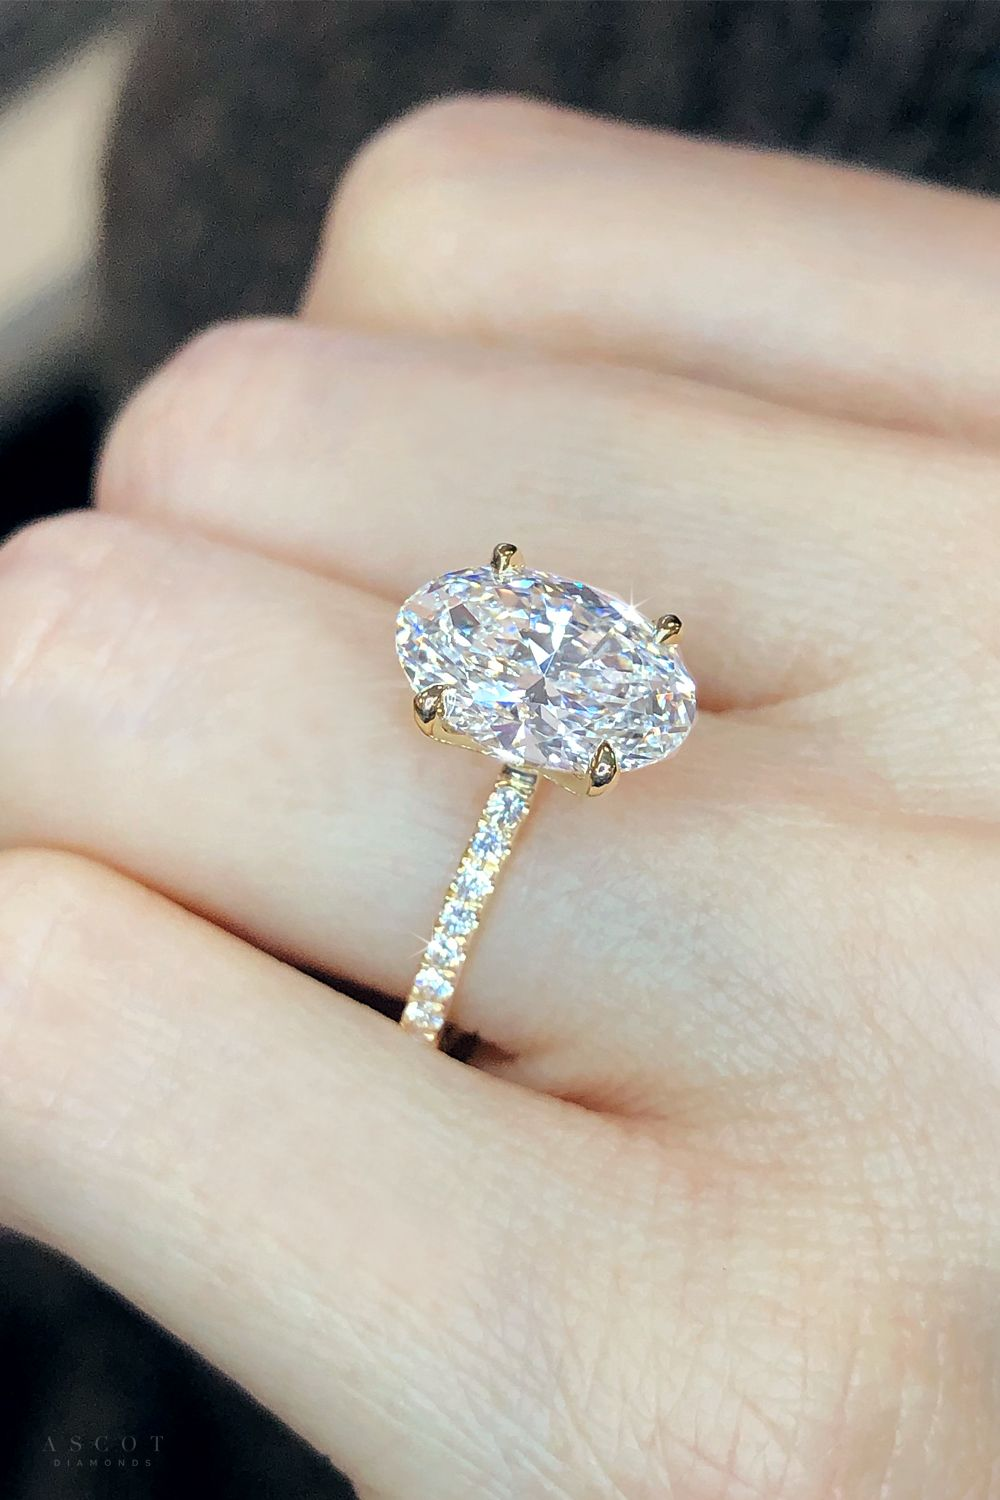 Custom created yellow gold diamond solitaire engagement ring. Feauturing a stunning oval cut lab grown diamond center. From the Ascot Diamonds collection.   #ascotdiamonds #ascotdiamondsatlanta #ovalcut